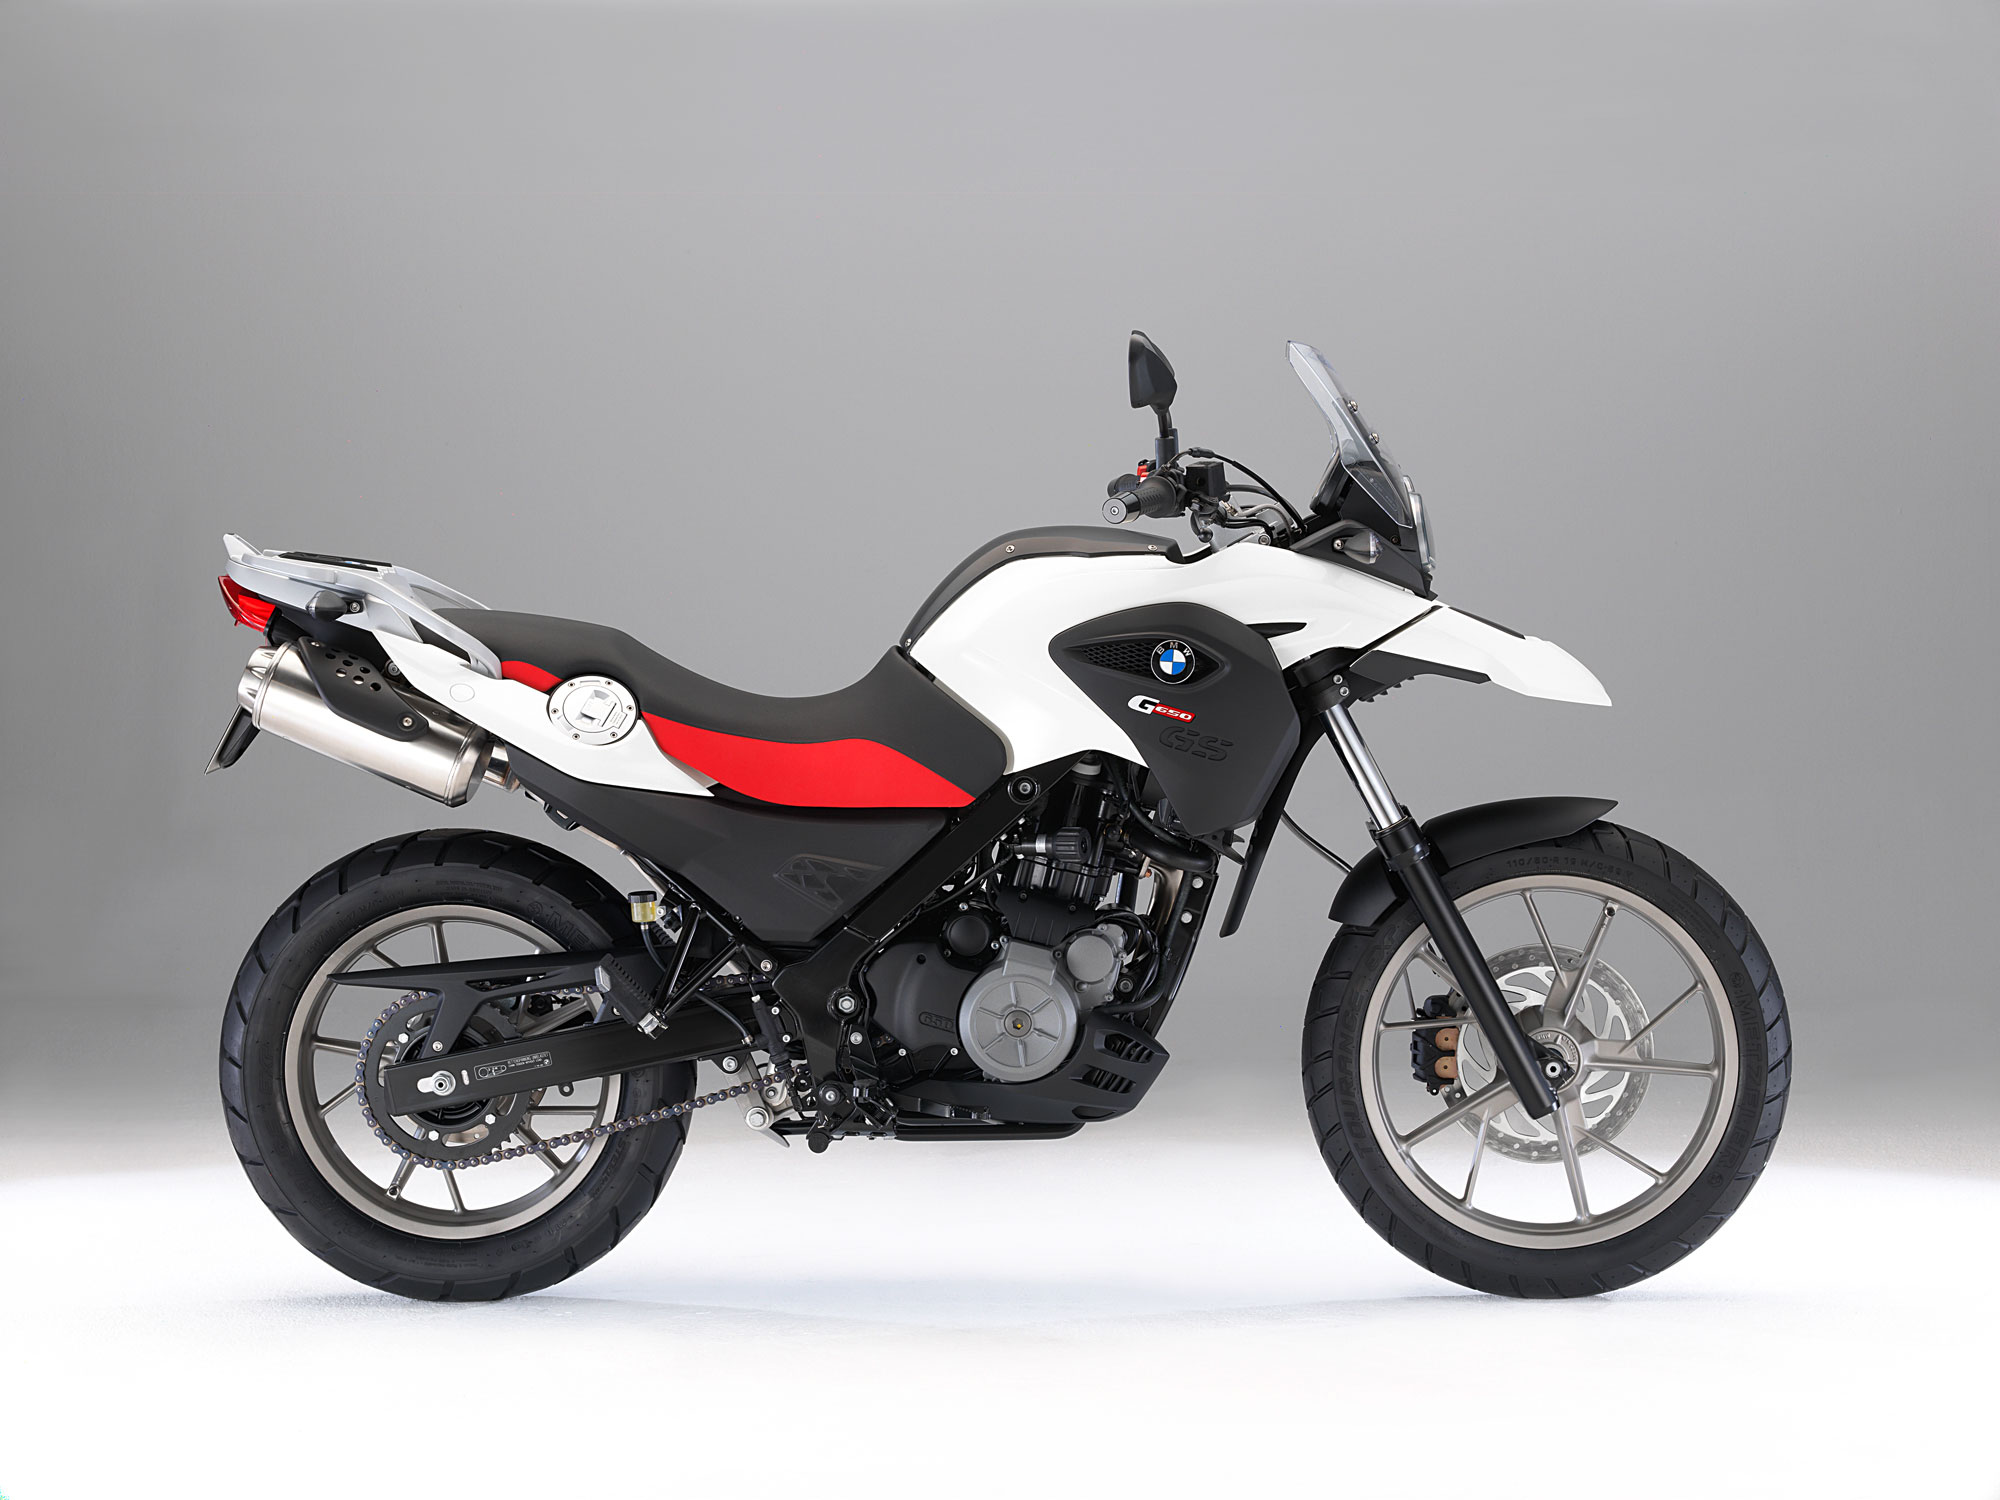 BMW G 650 GS 2011 images #8377